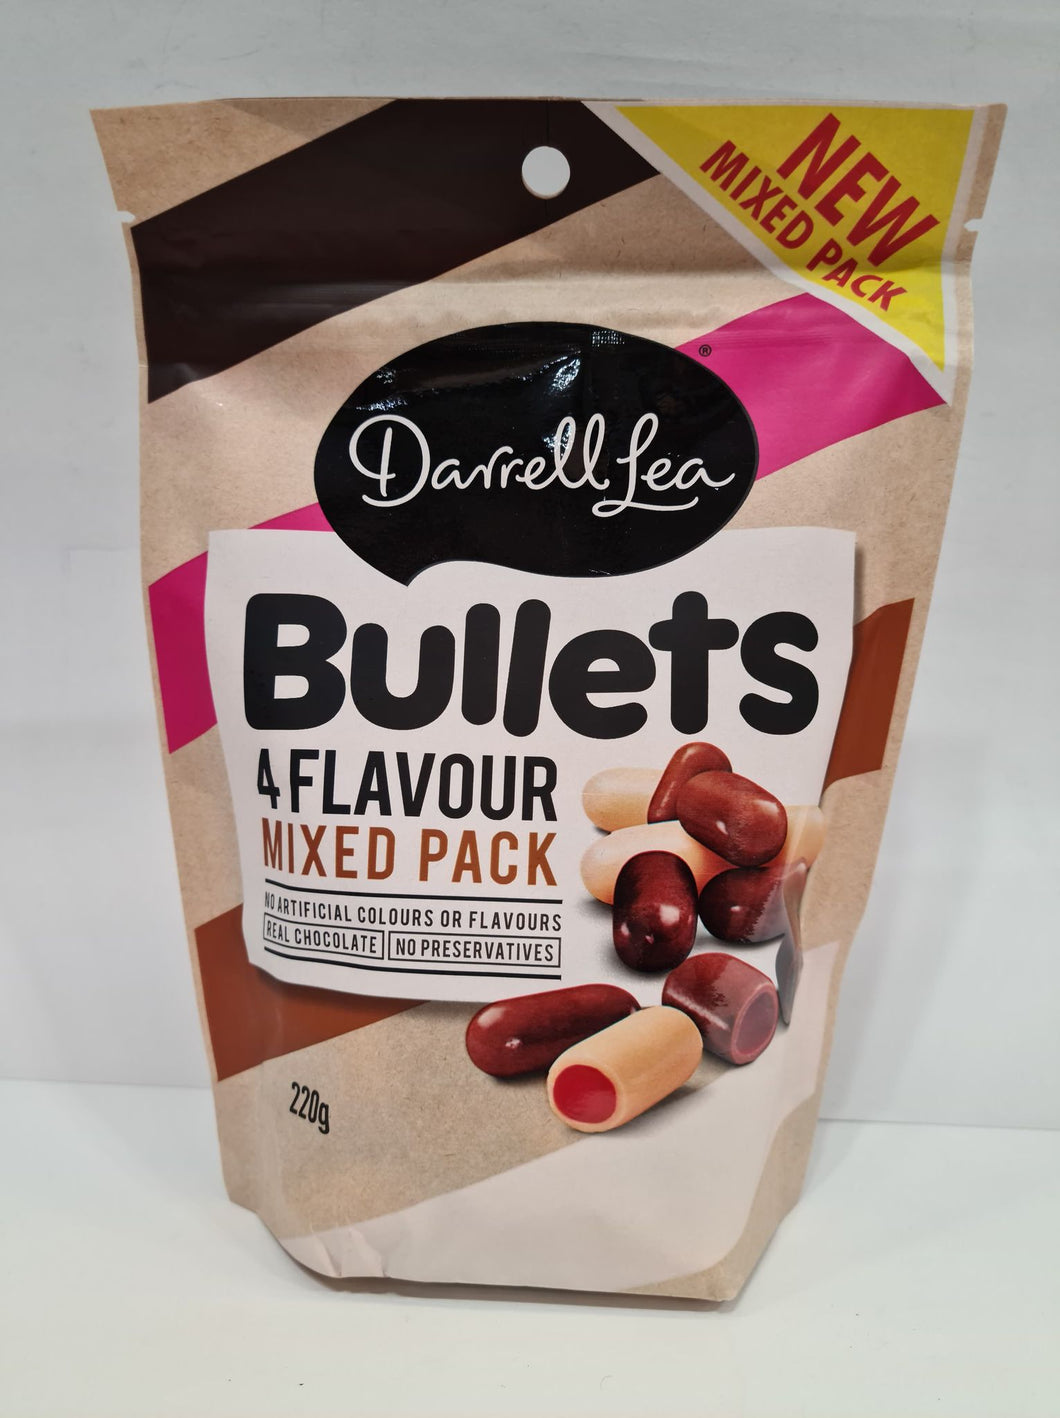 Darrell Lea 4 Flavour Mixed Bullets